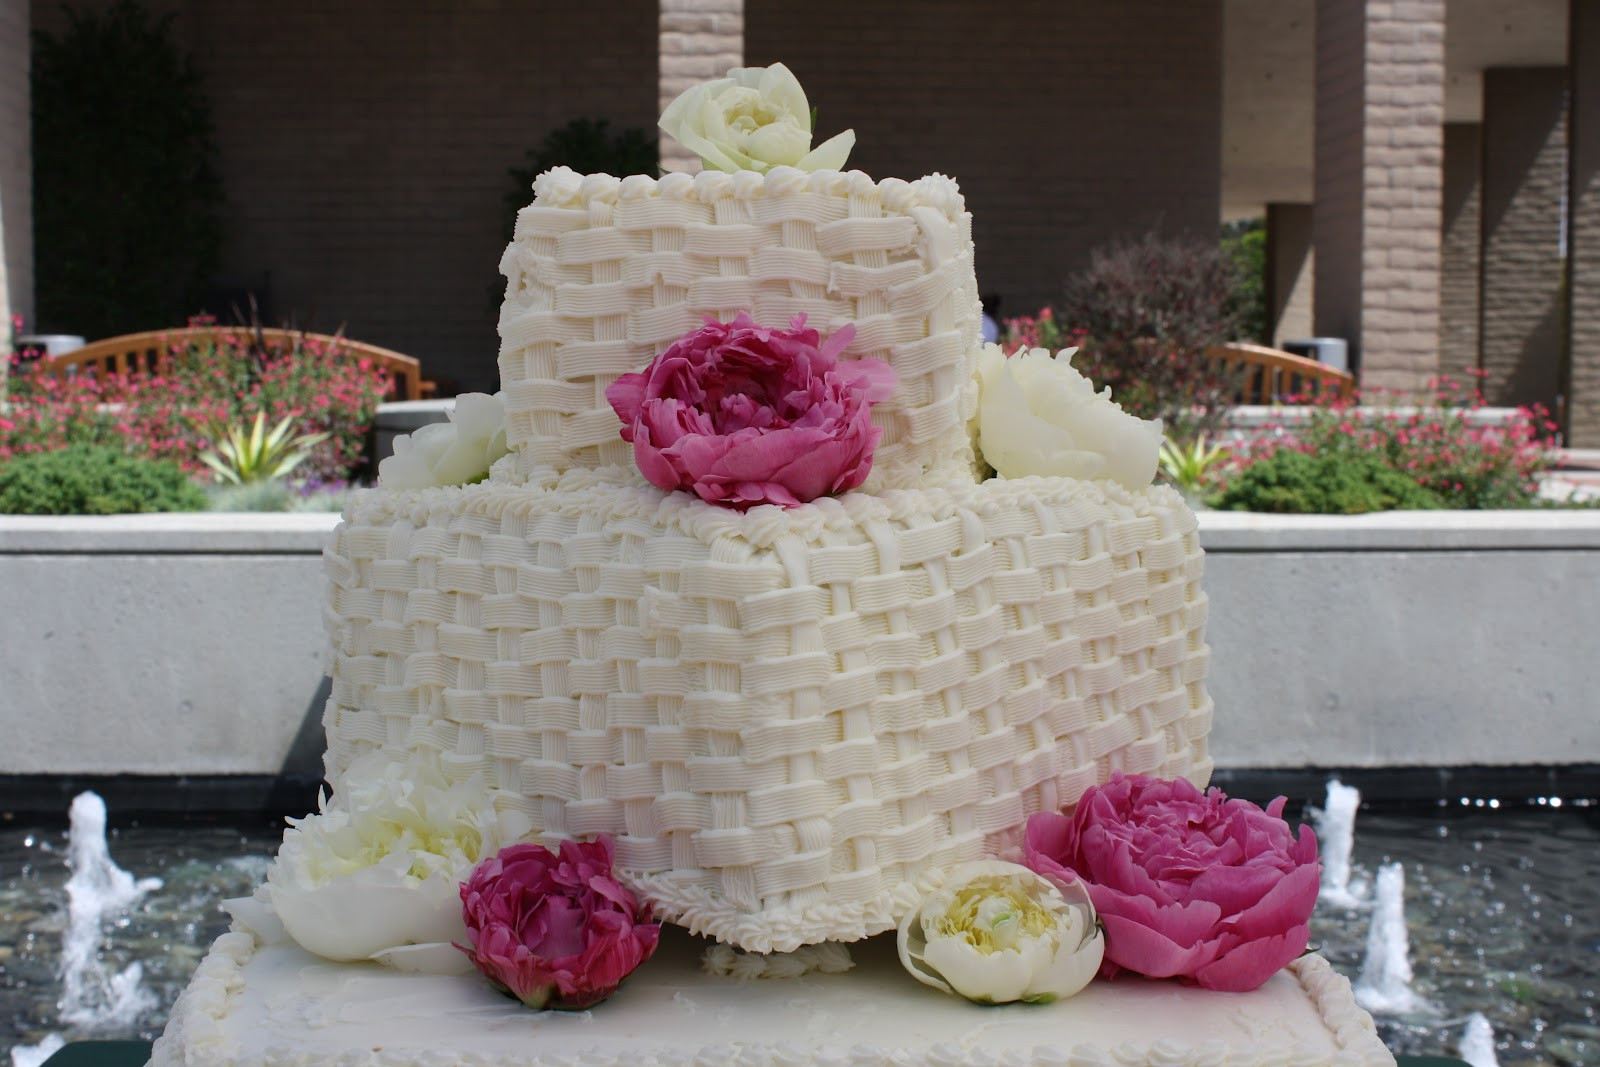 Basket Weave Wedding Cakes  Cakes by Victoria Clare Basket Weave Wedding Cake